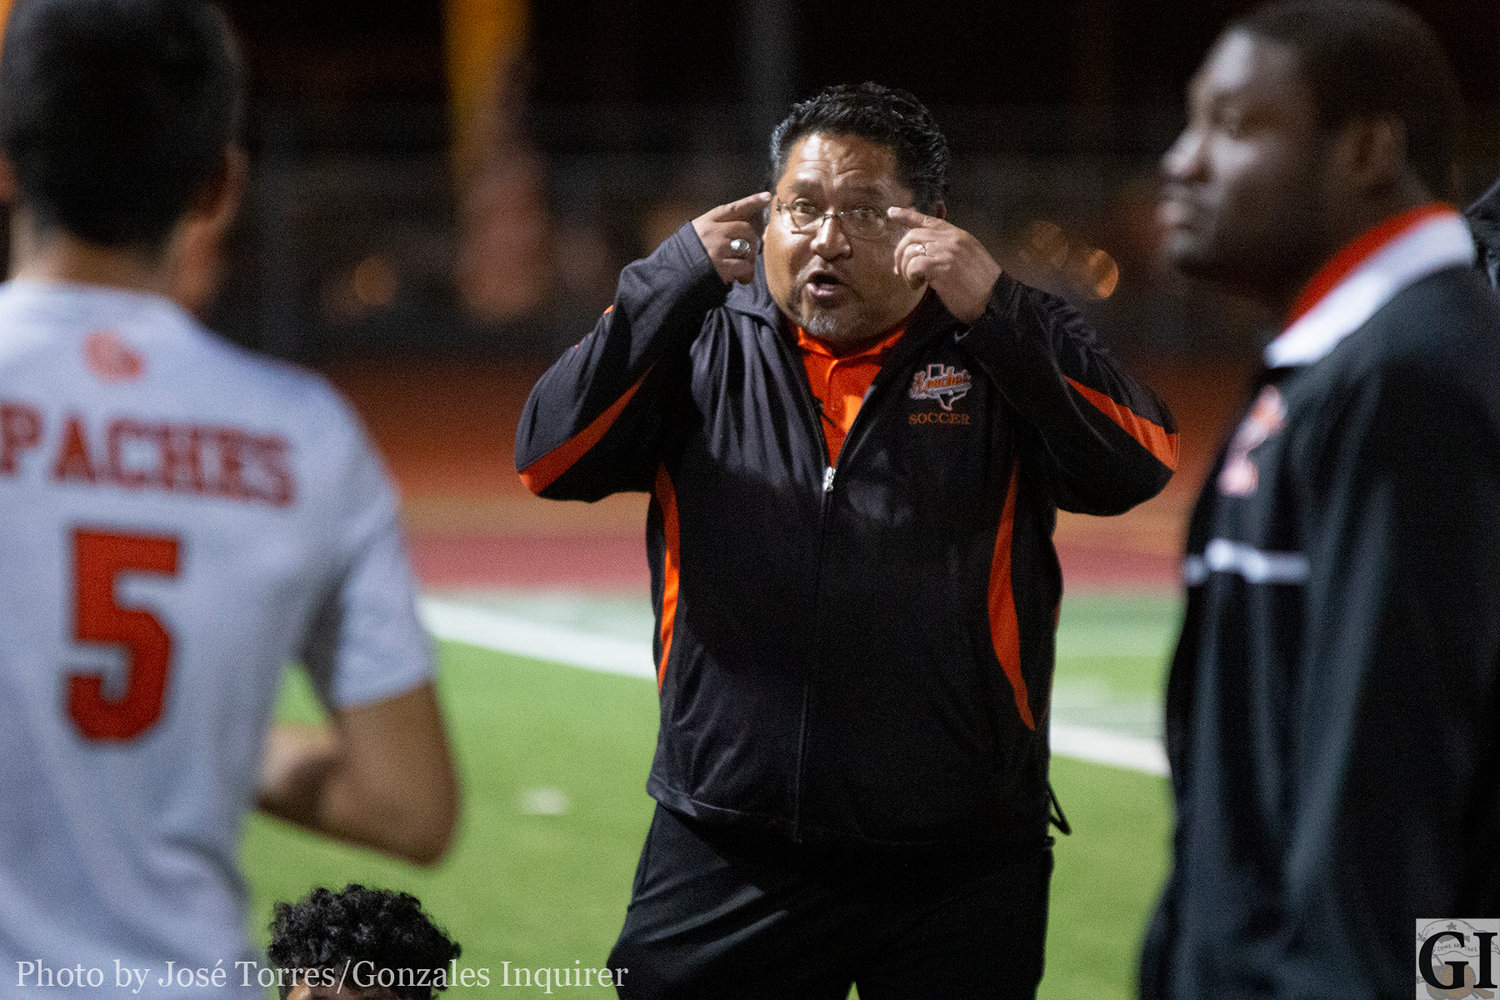 Head coach Greg Ramirez and his Gonzales Apaches soccer team is back in the regional tournament. This will be the team's second trip to McAllen, first since the 2015-16 season in Gonzales' five seasons of existence.